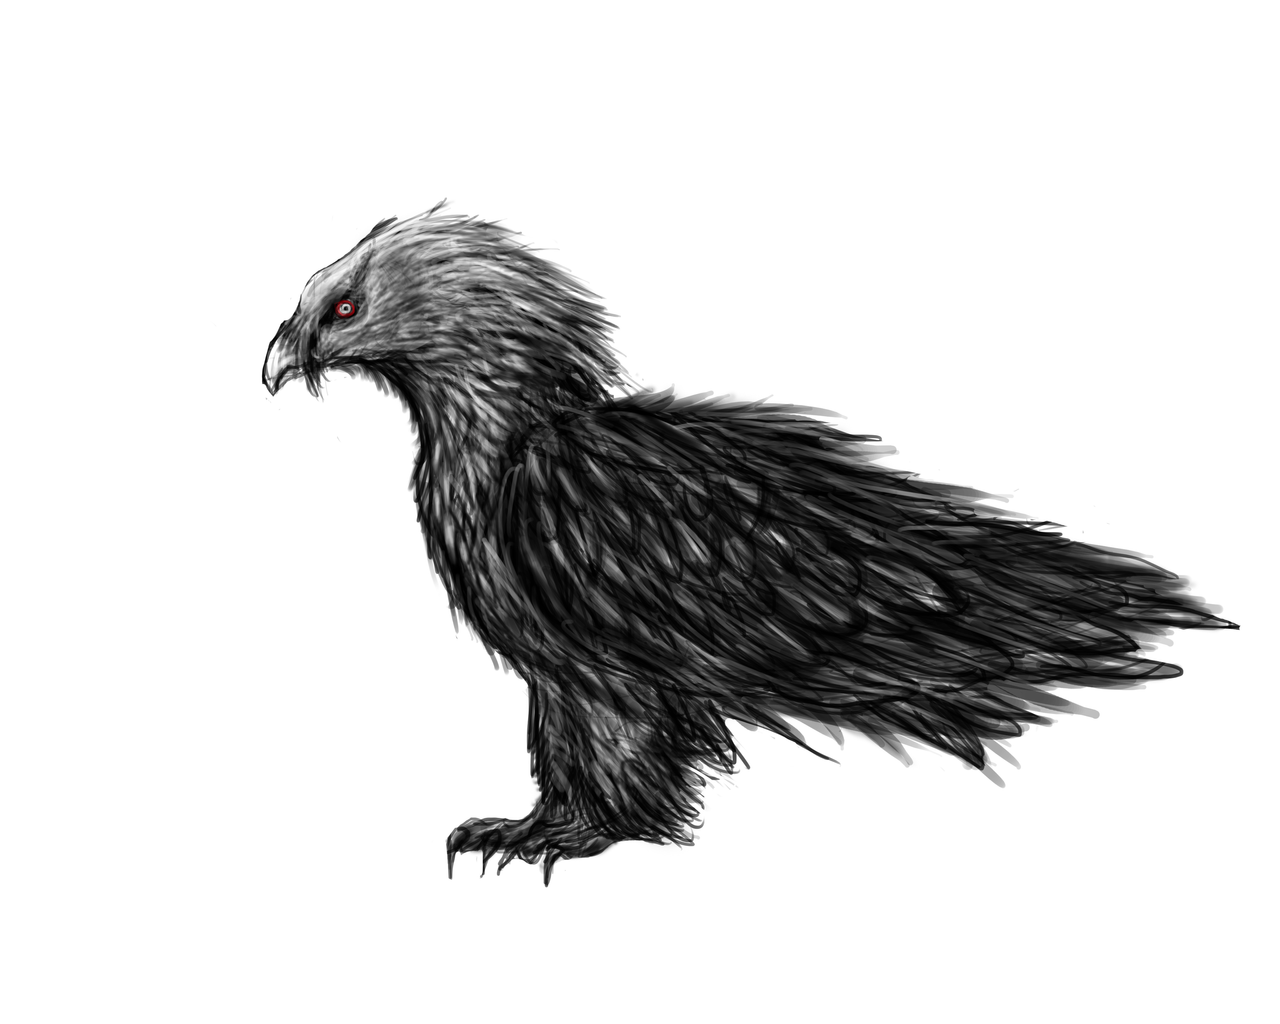 vulture drawing 𝕂𝕒𝕥𝕖 𝕂𝕖𝕟𝕟𝕖𝕕𝕪 on twitter quotinktober day 7bearded vulture drawing vulture